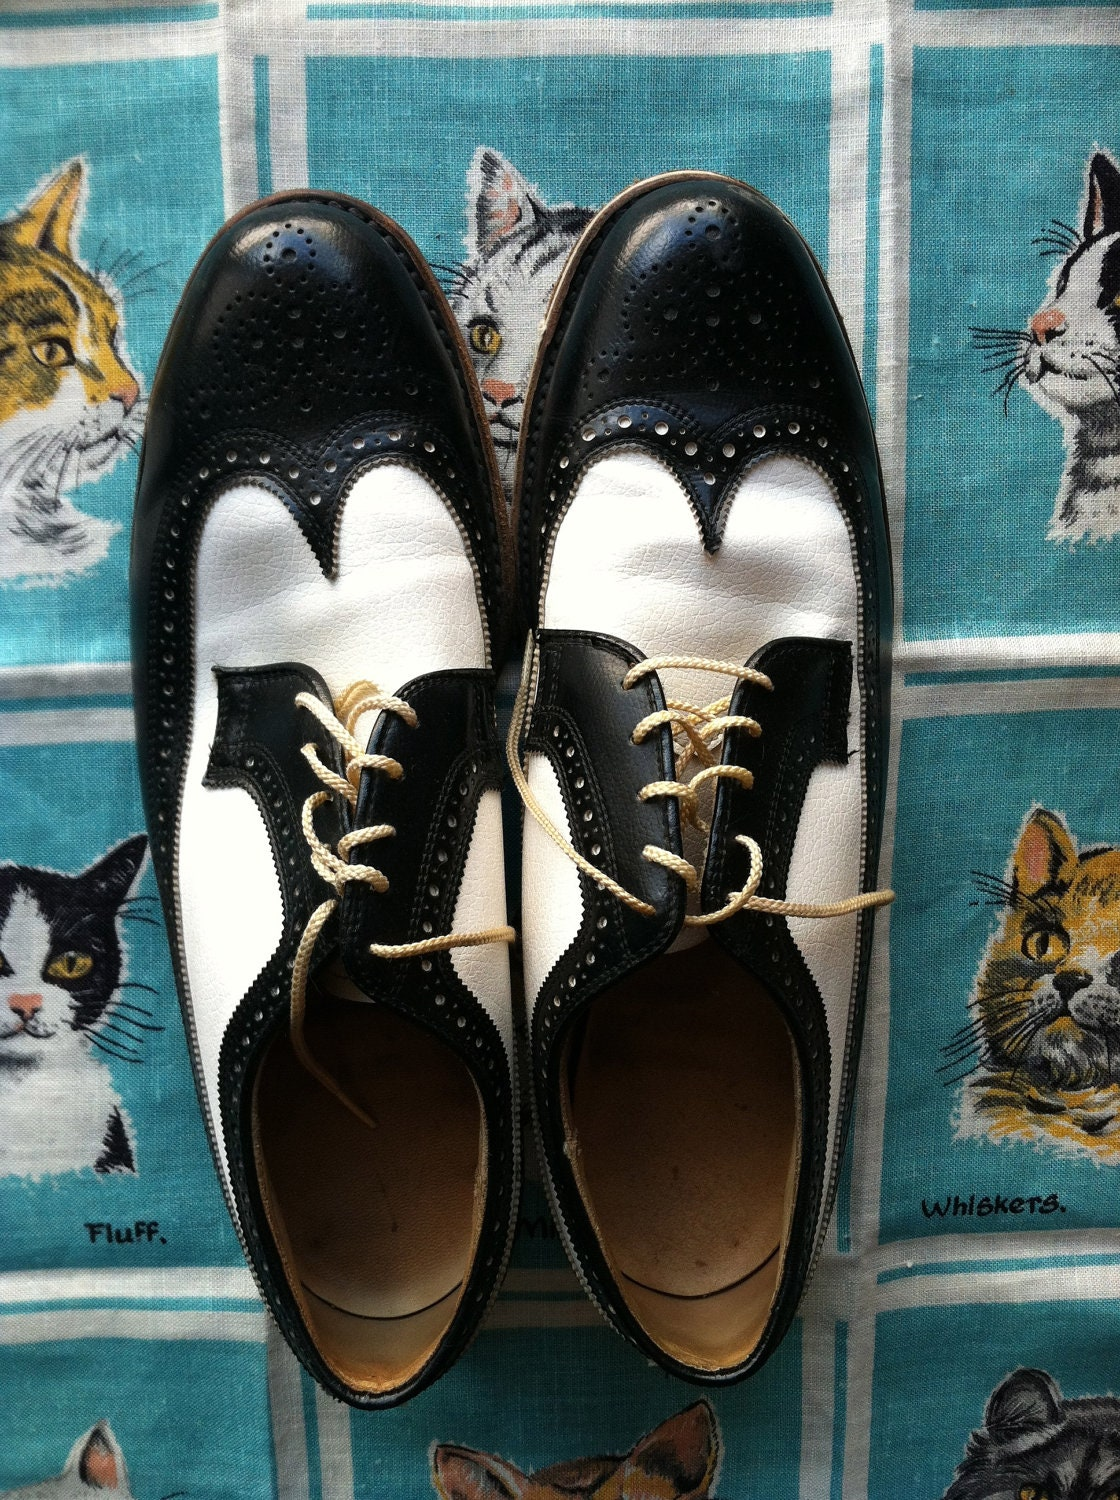 60's 70's men's black and white vinyl wingtip